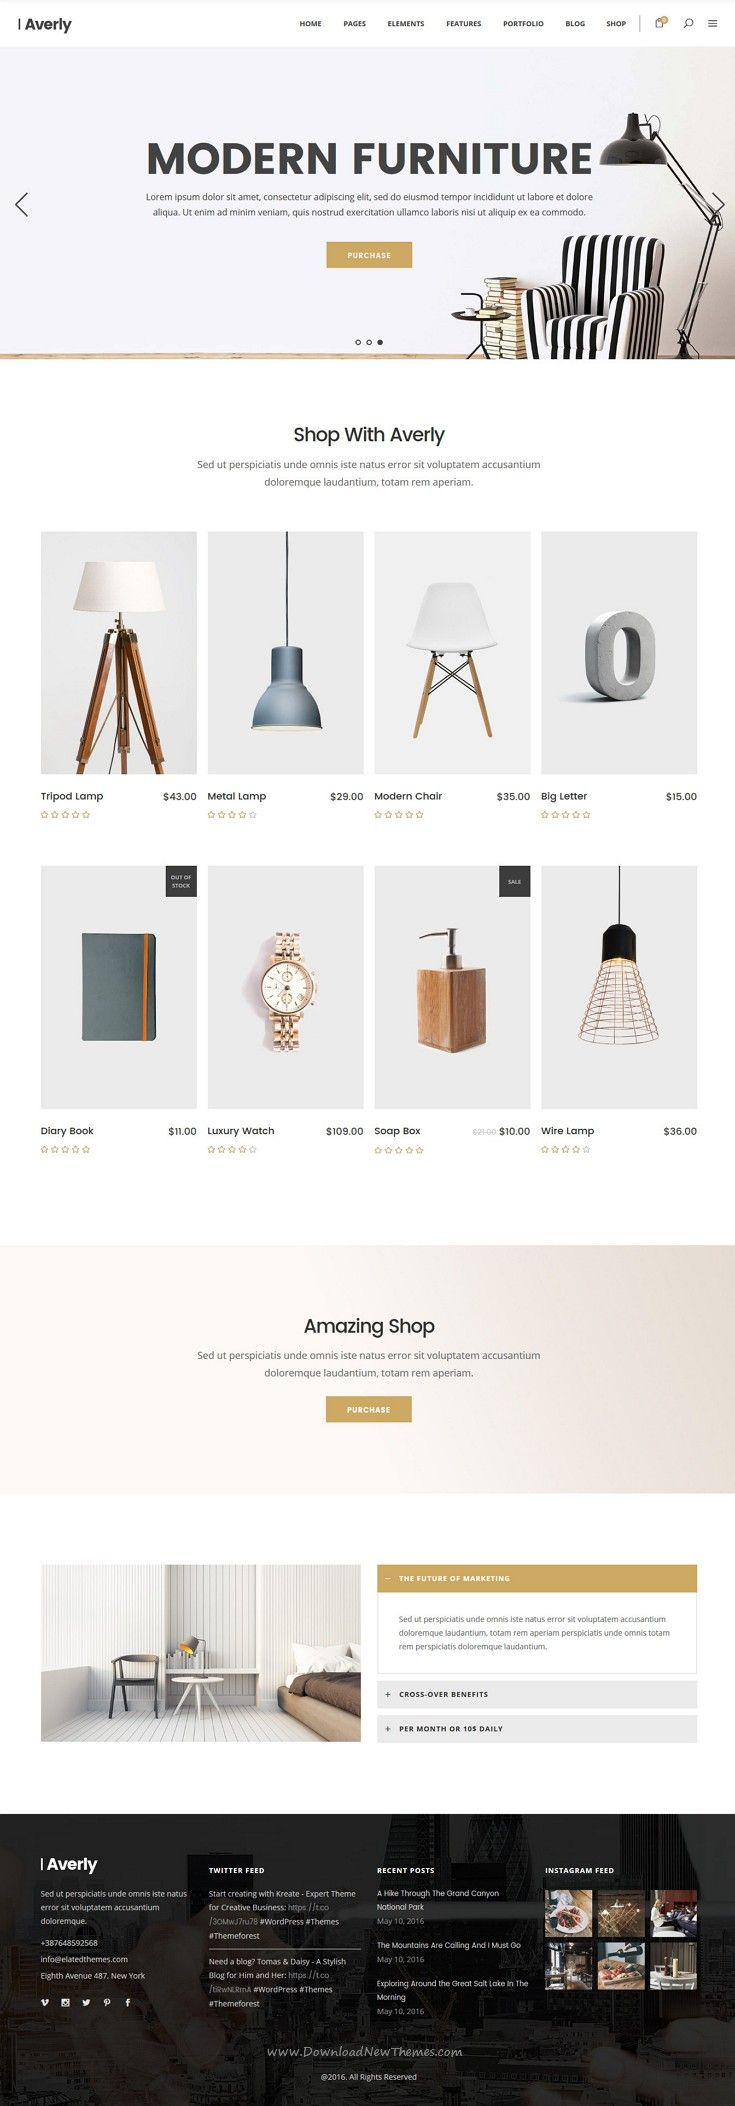 Averly is hip and creative WordPress theme for multipurpose website with 24+ stunning niche layouts and packed features. #furniture #decor #shop Download Now!